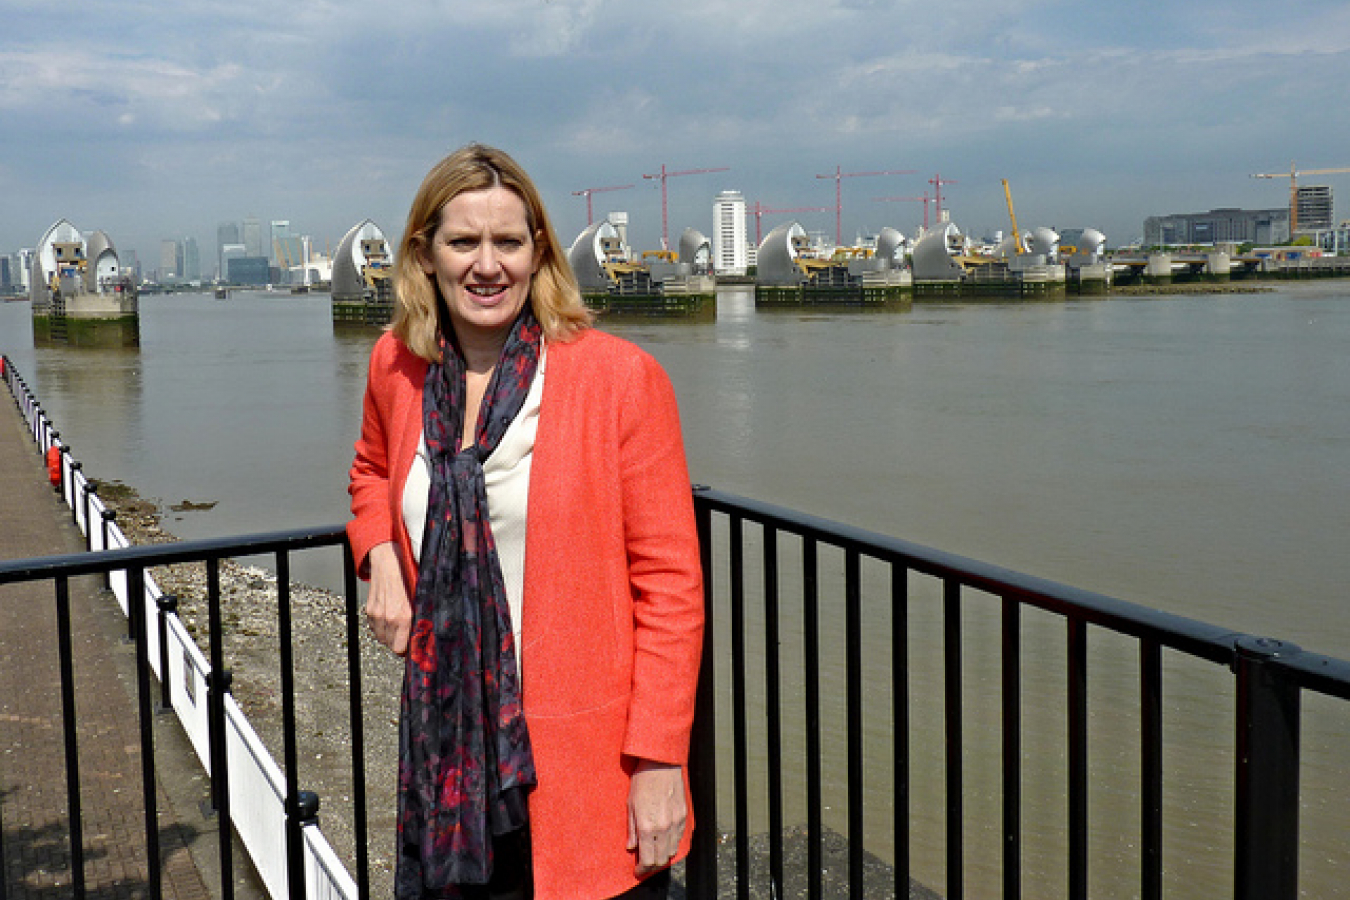 Amber Rudd, Home Secretary, in front of the Thames barrier